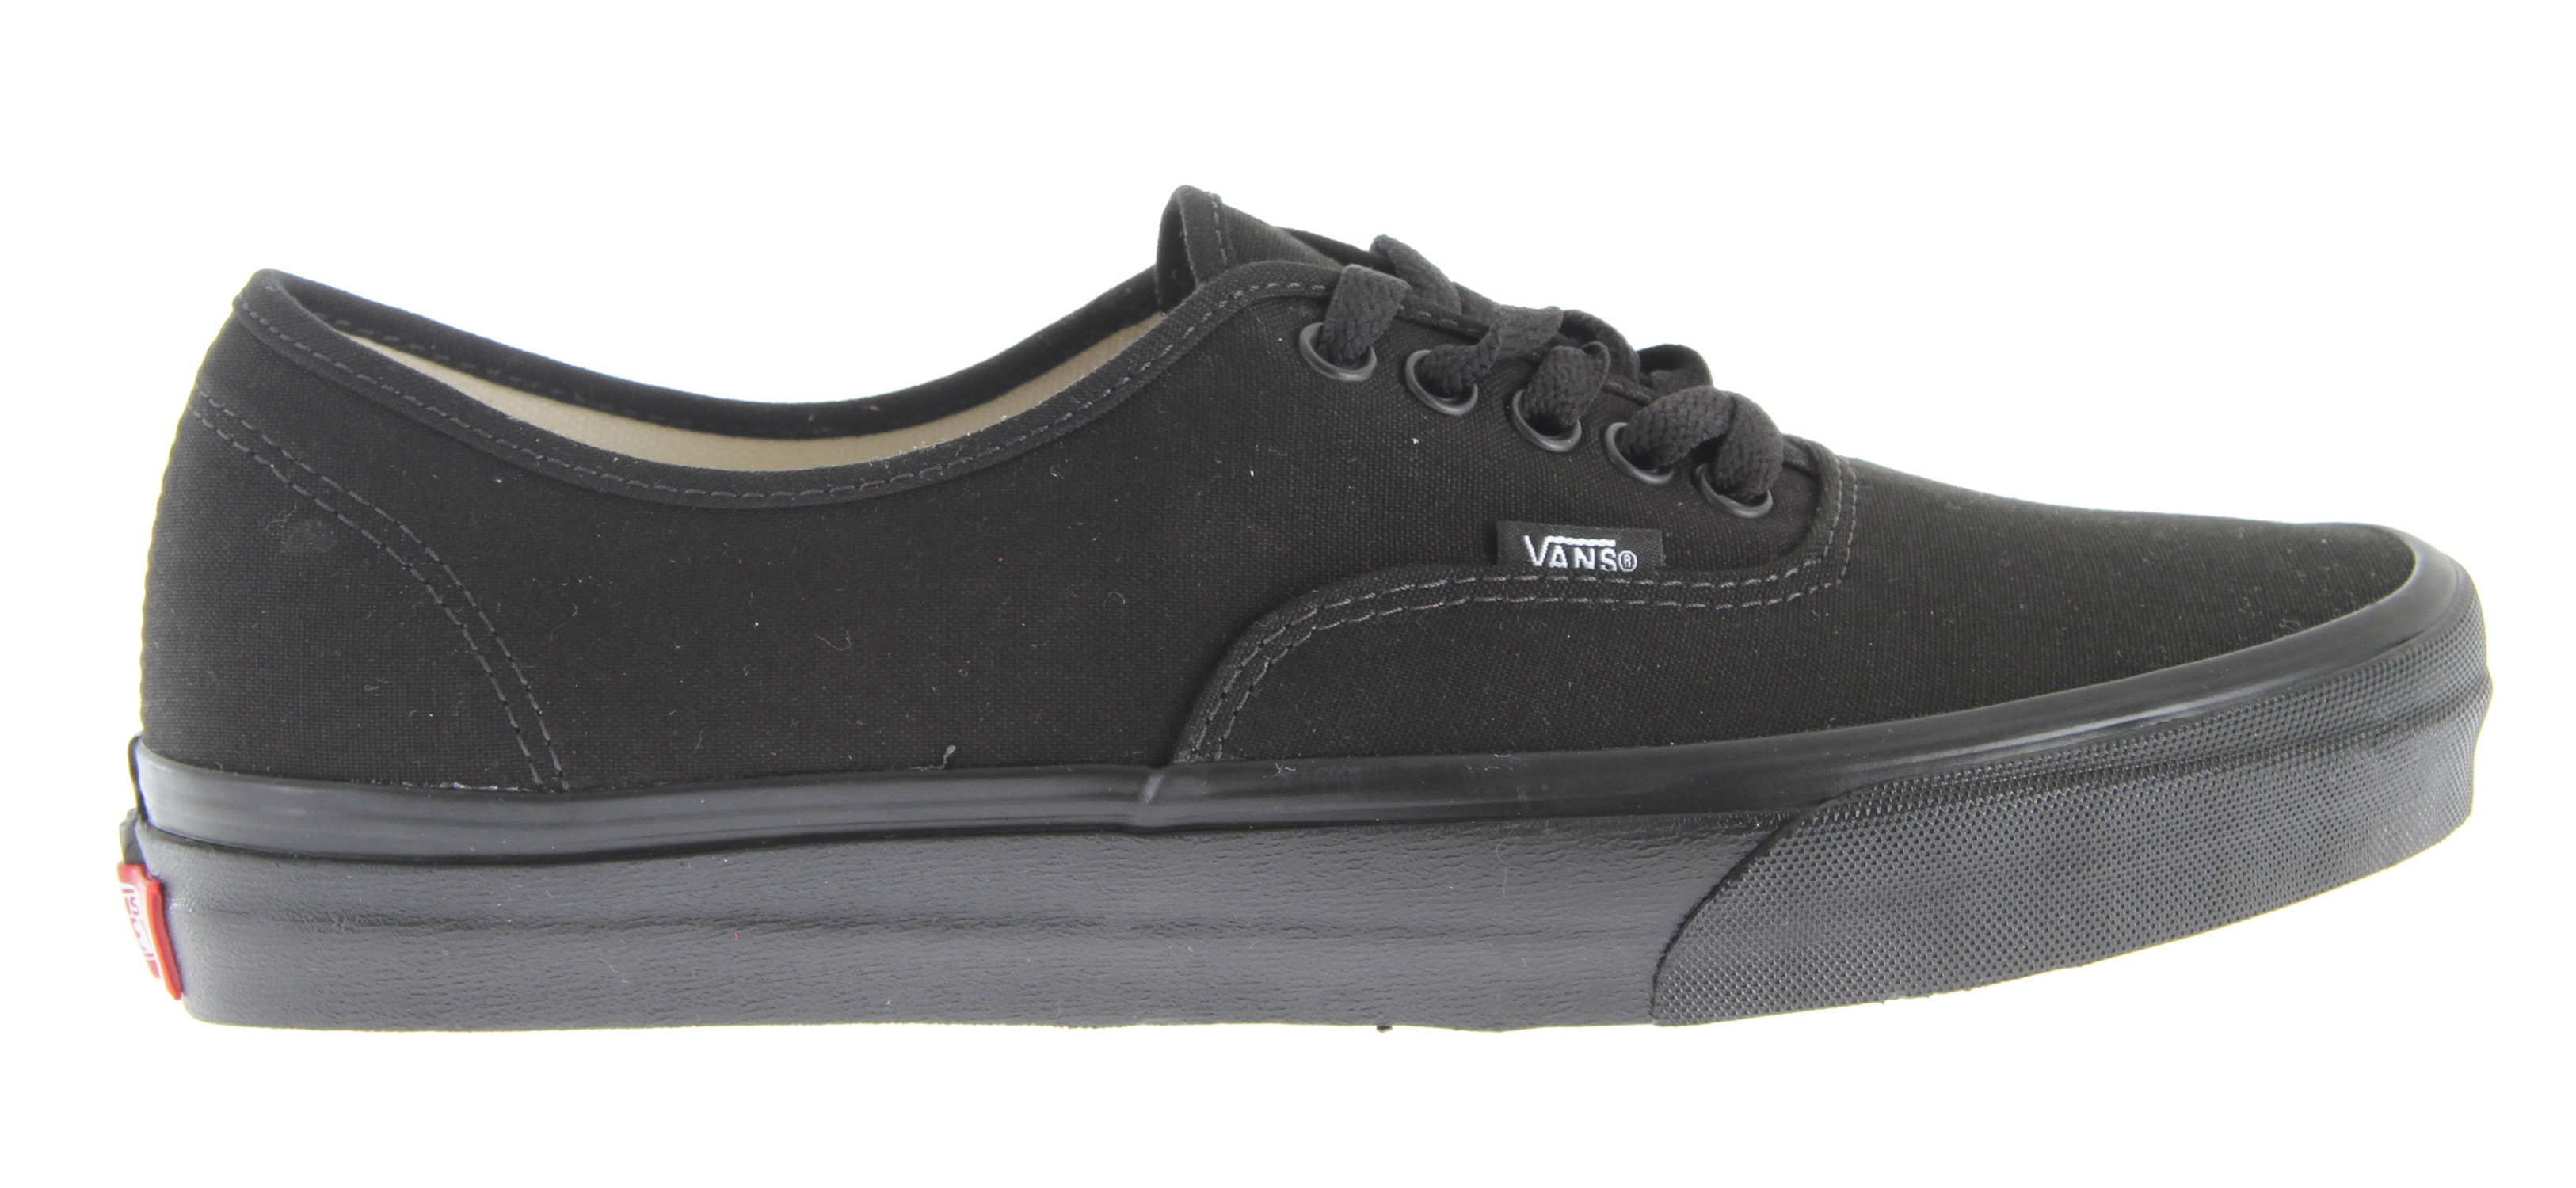 Skateboard The Authentic, Vans original and now iconic style, is a simple low top, lace-up with durable canvas upper, metal eyelets, Vans flag label and Vans original Waffle Outsole* Low top, lace-up * Durable canvas upper * Metal eyelets * Vans flag label * Vans original Waffle Outsole - $50.00